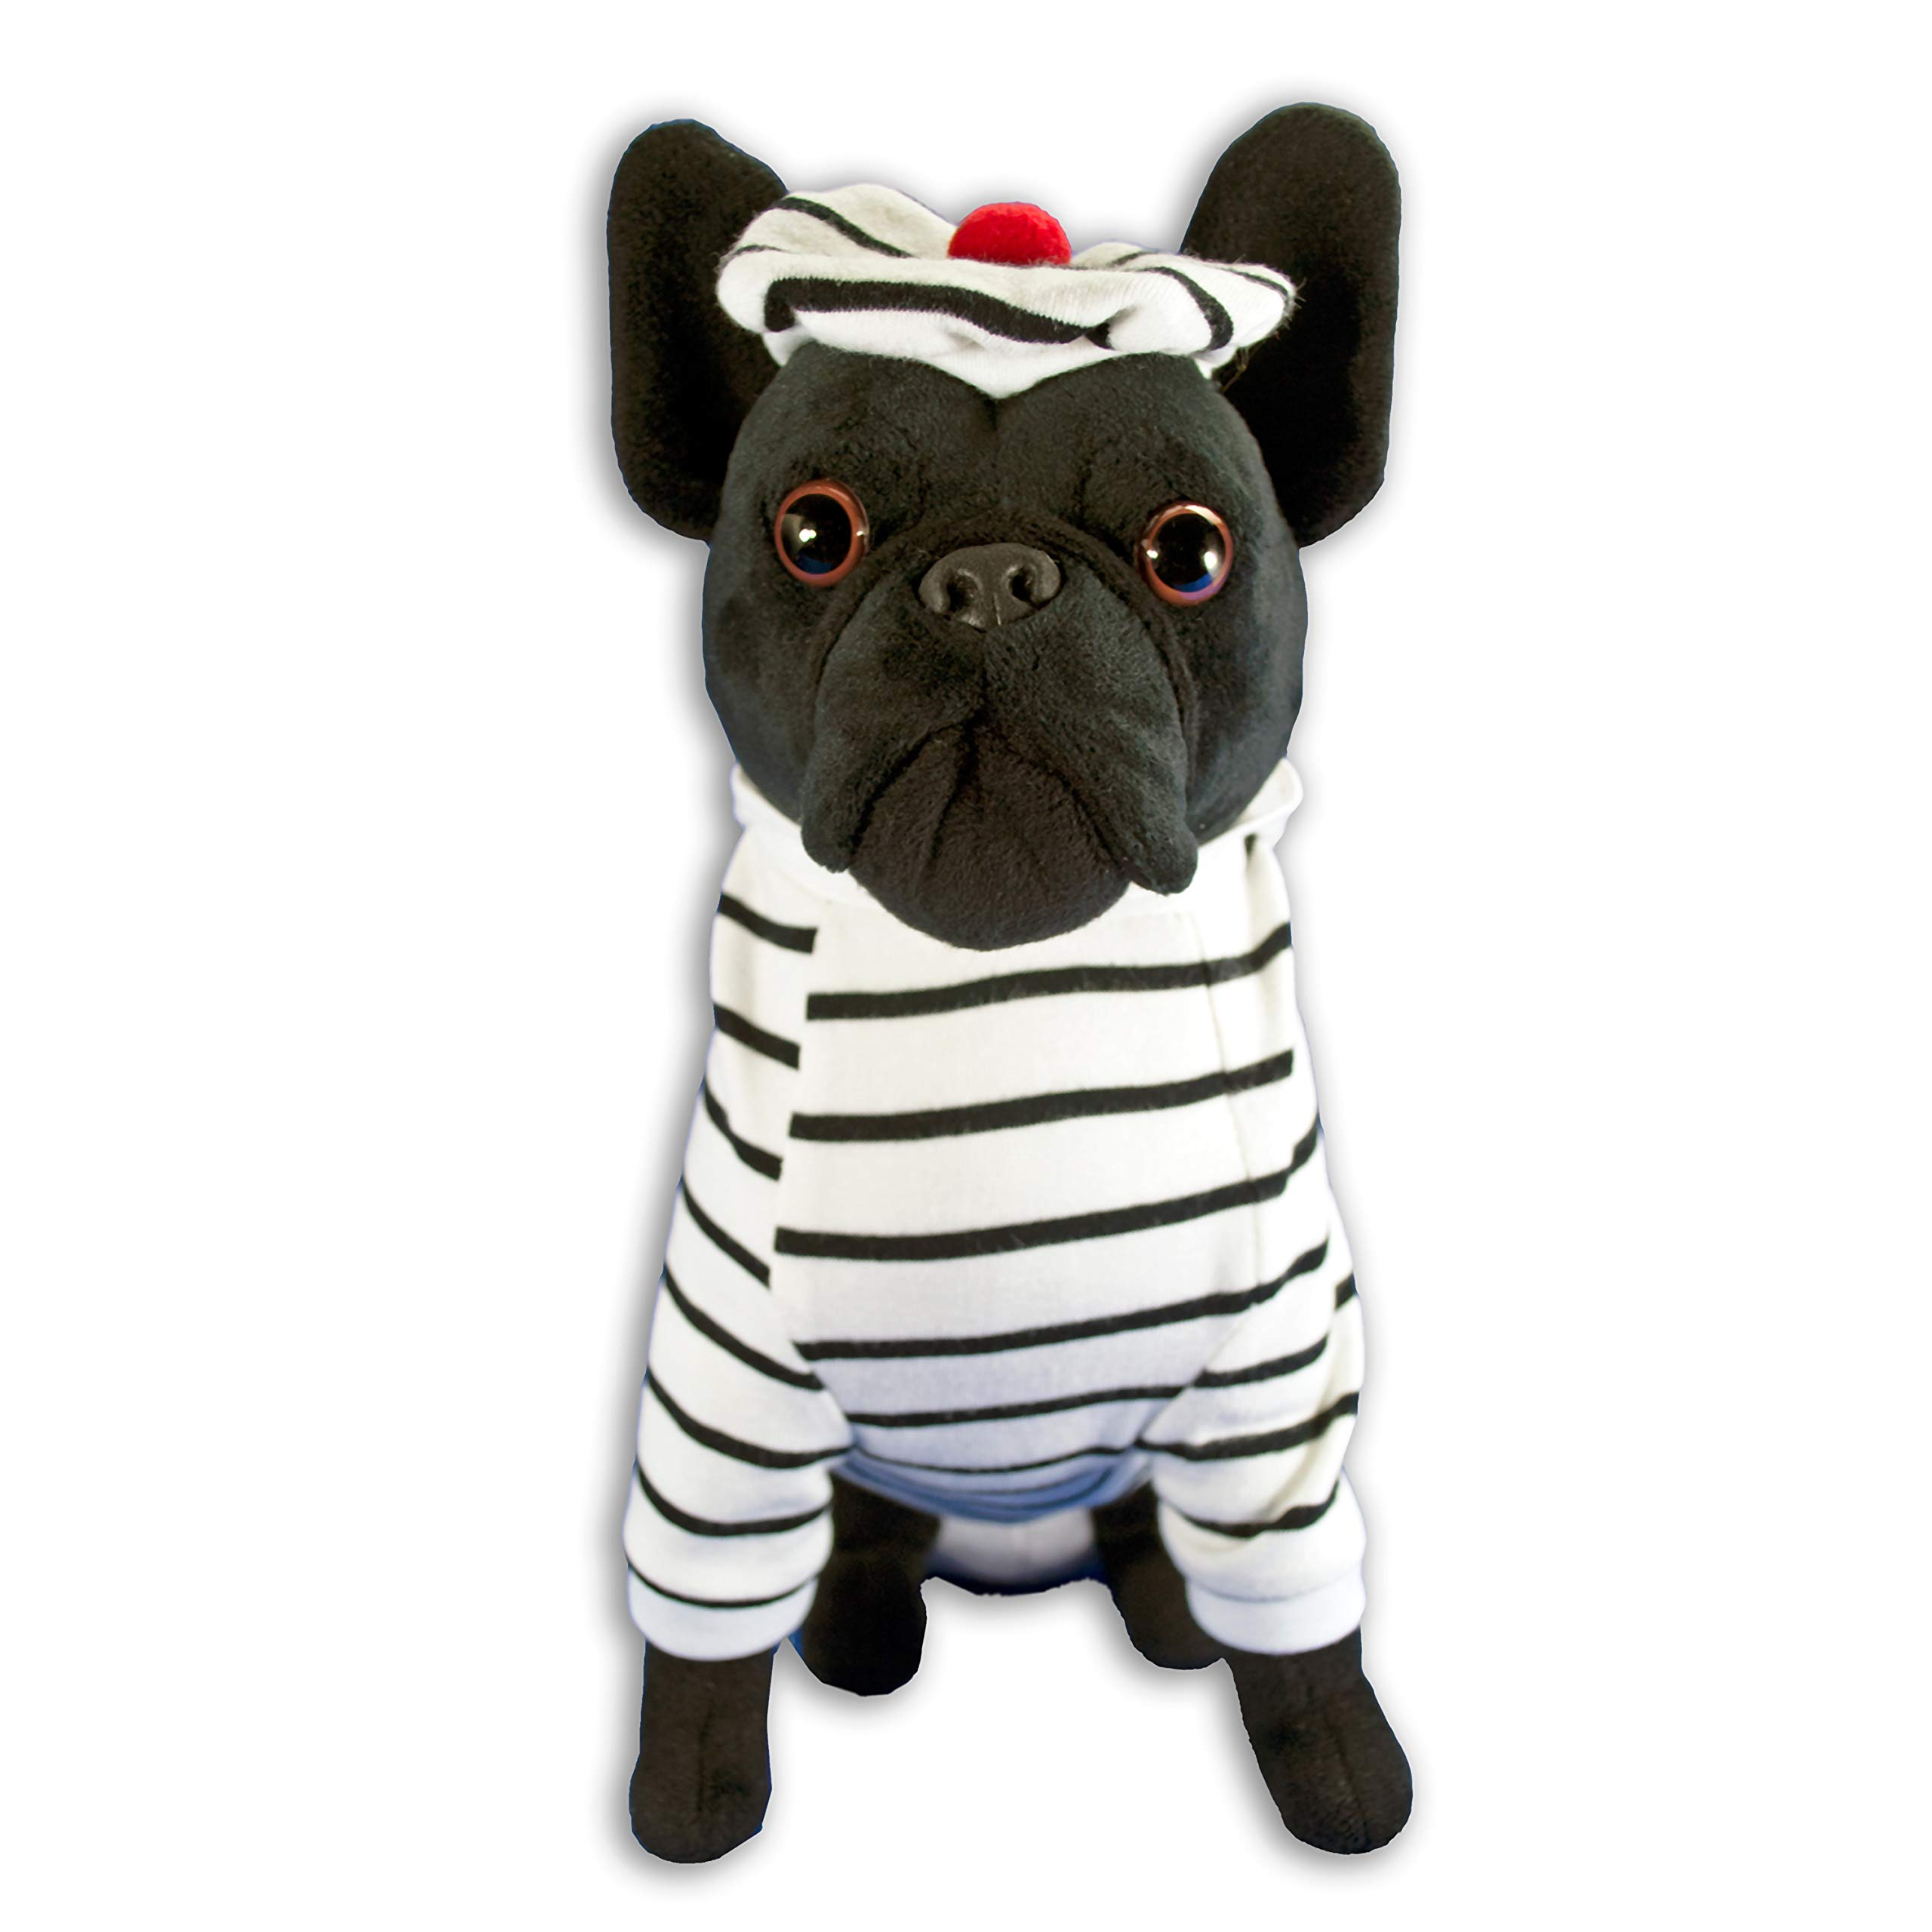 FGA MARKETPLACE French Bulldog Stuffed Animal, Realistic Looking Supersoft Plush Toy , Amazing Collection, A Huggable Keepsake for All Ages French Navy